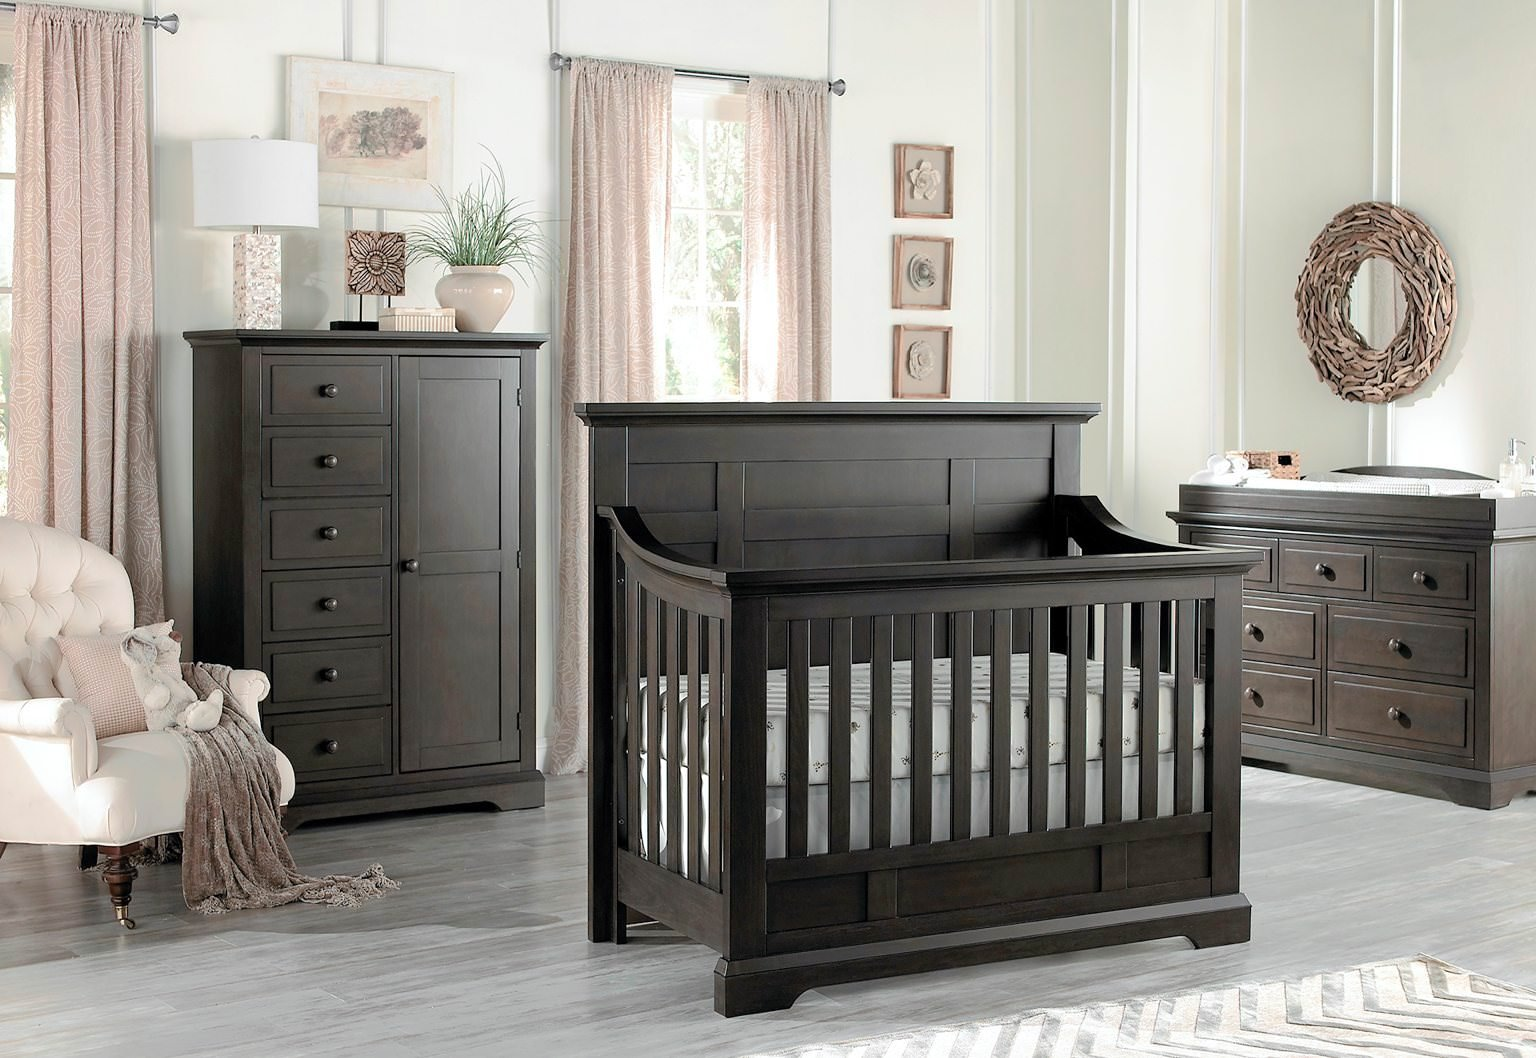 Full Size Conversion Kit Bed Rails for Oxford Baby Cribs (Slate) by CC KITS (Image #3)